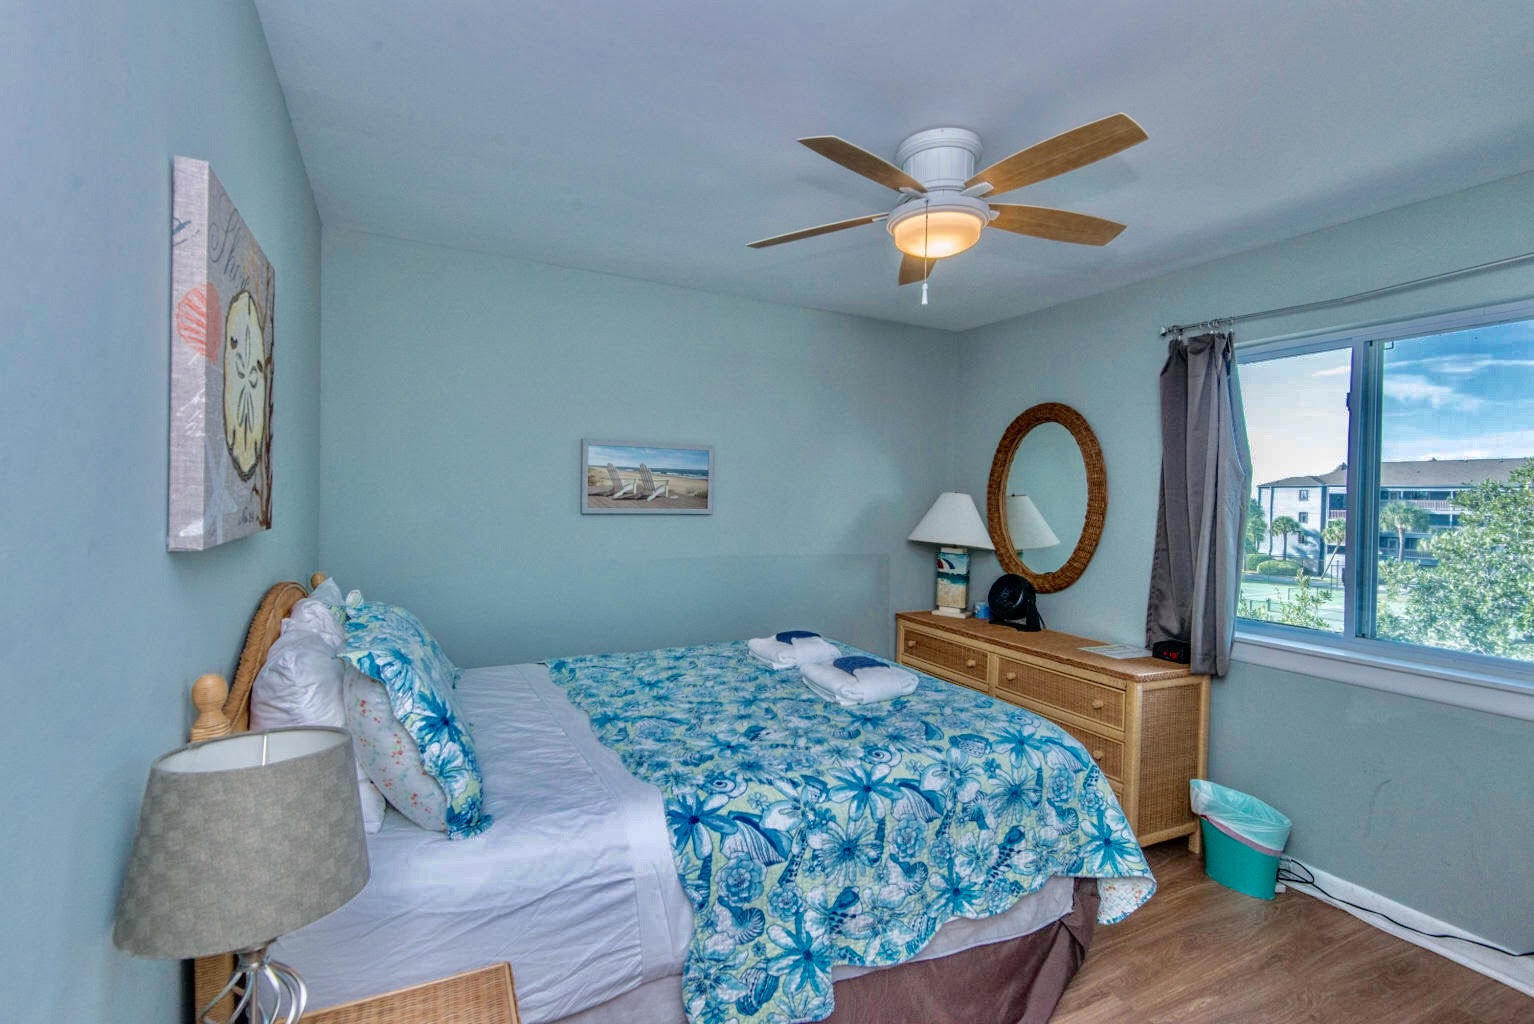 Mariners Cay Homes For Sale - 42 Mariners Cay, Folly Beach, SC - 18